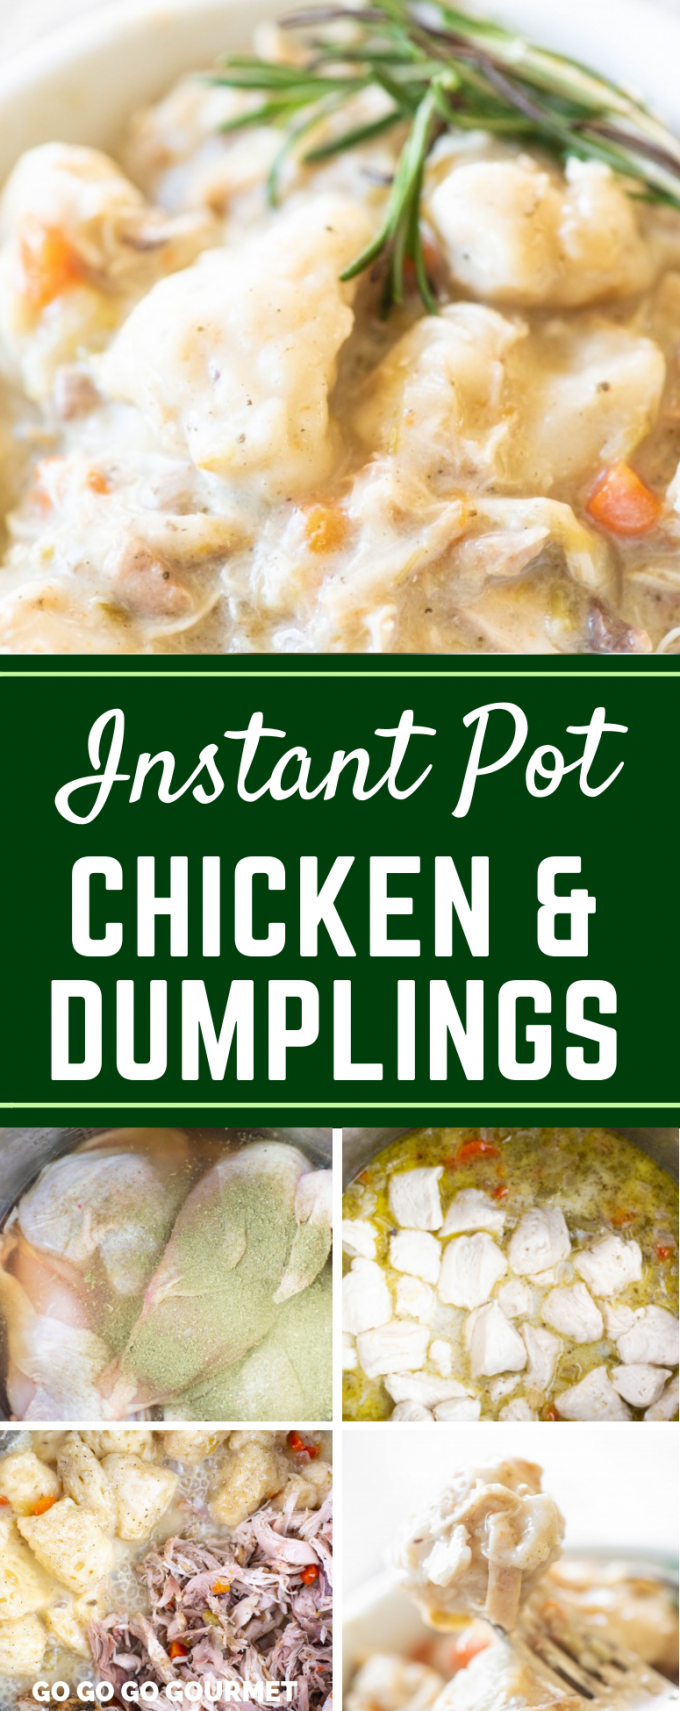 This Instant Pot Chicken and Dumplings recipe is made easy with biscuits from the can! It is one of the best easy recipes when you are  craving comfort food. Forget the Bisquick biscuits, these Pillsbury biscuits are even better! Dinner from scratch, made in the electric pressure cooker for the win! #gogogogourmet #instantpotchickenanddumplings #easyinstantpotrecipes #comfortfoodrecipes